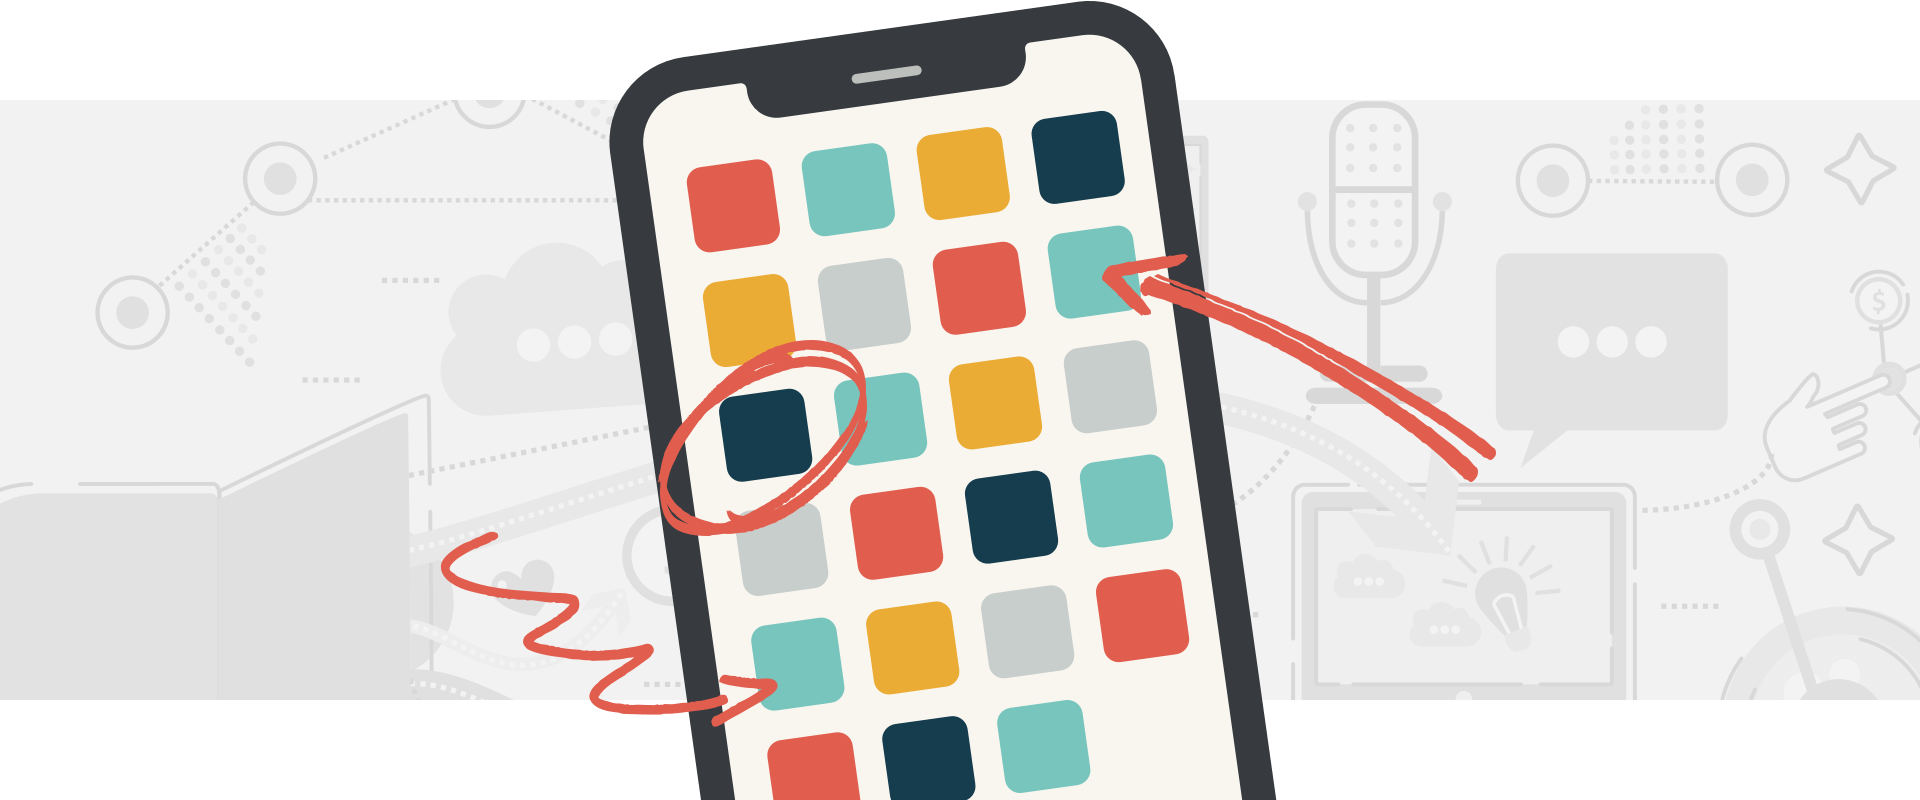 Smartphone with arrows pointing to various app icons